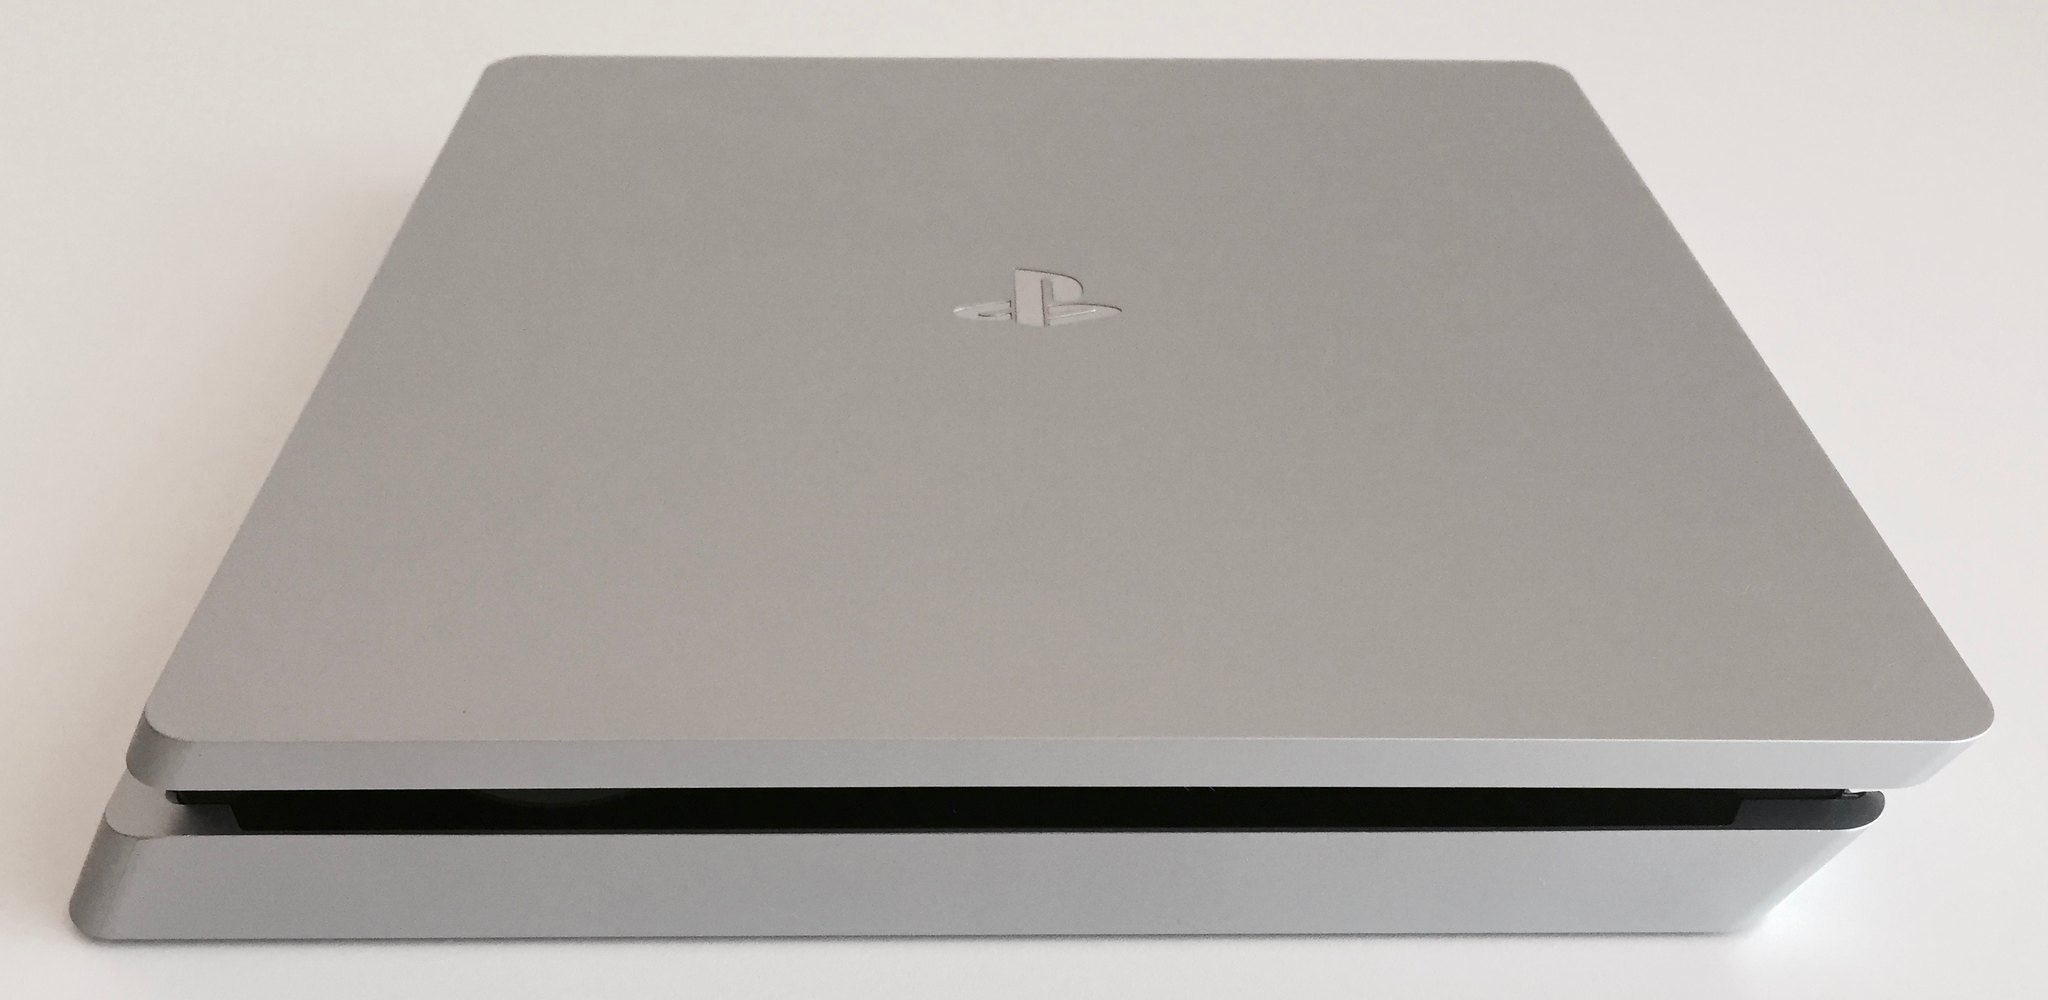 20171020 PS4 Silver 00002